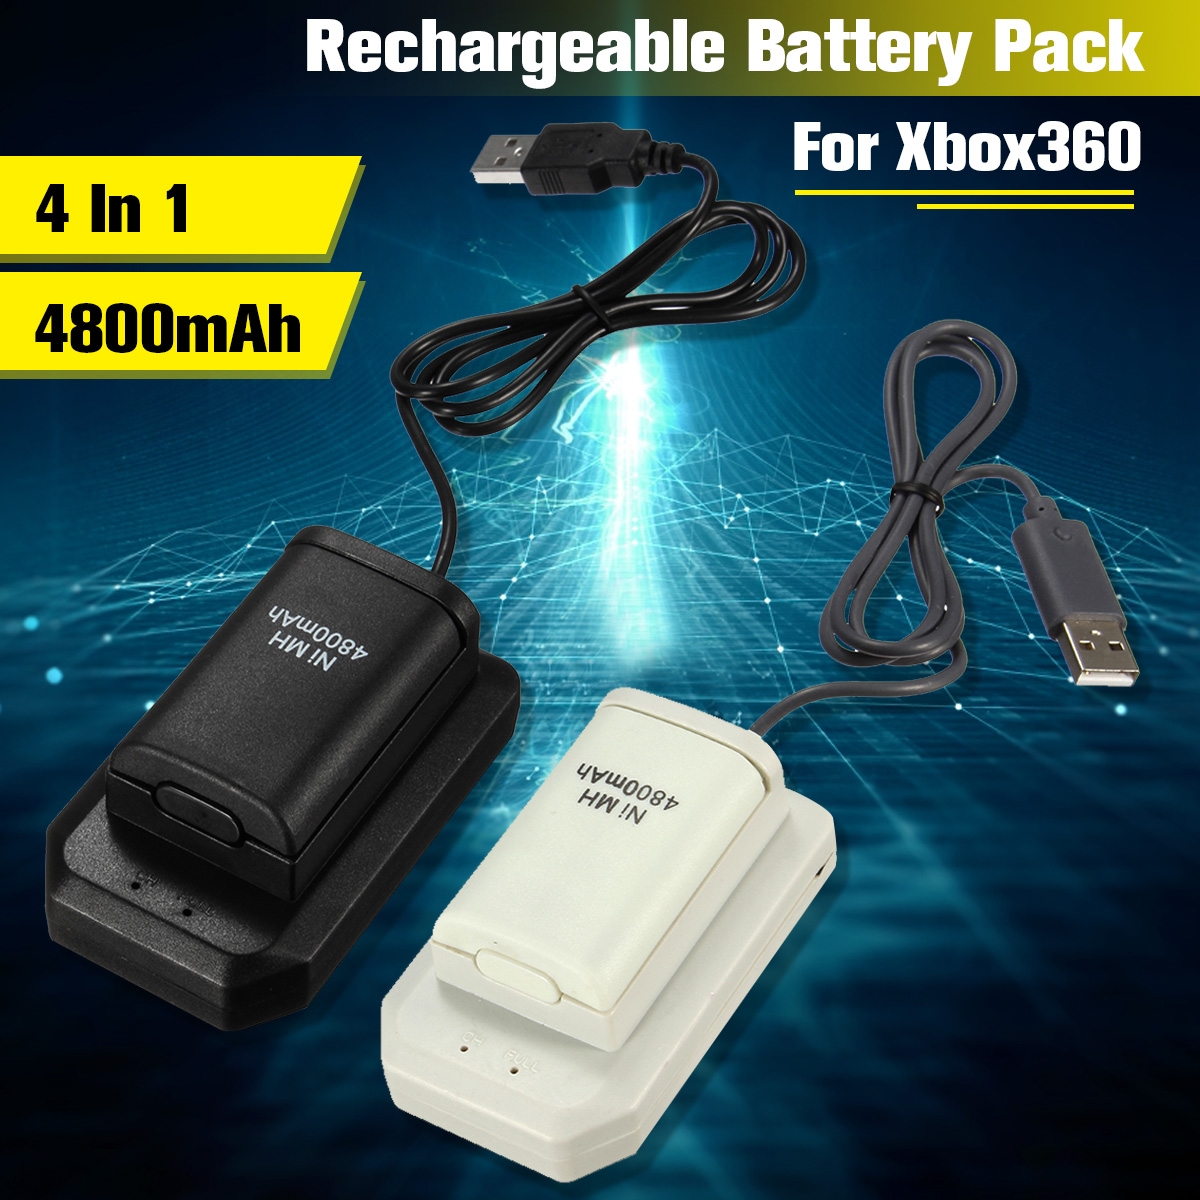 4 In 1 4800mAh Rechargeable Battery Pack Batteries+Charger+Usb Cable Charging Kit For Xbox 360 Battery Wireless Controller